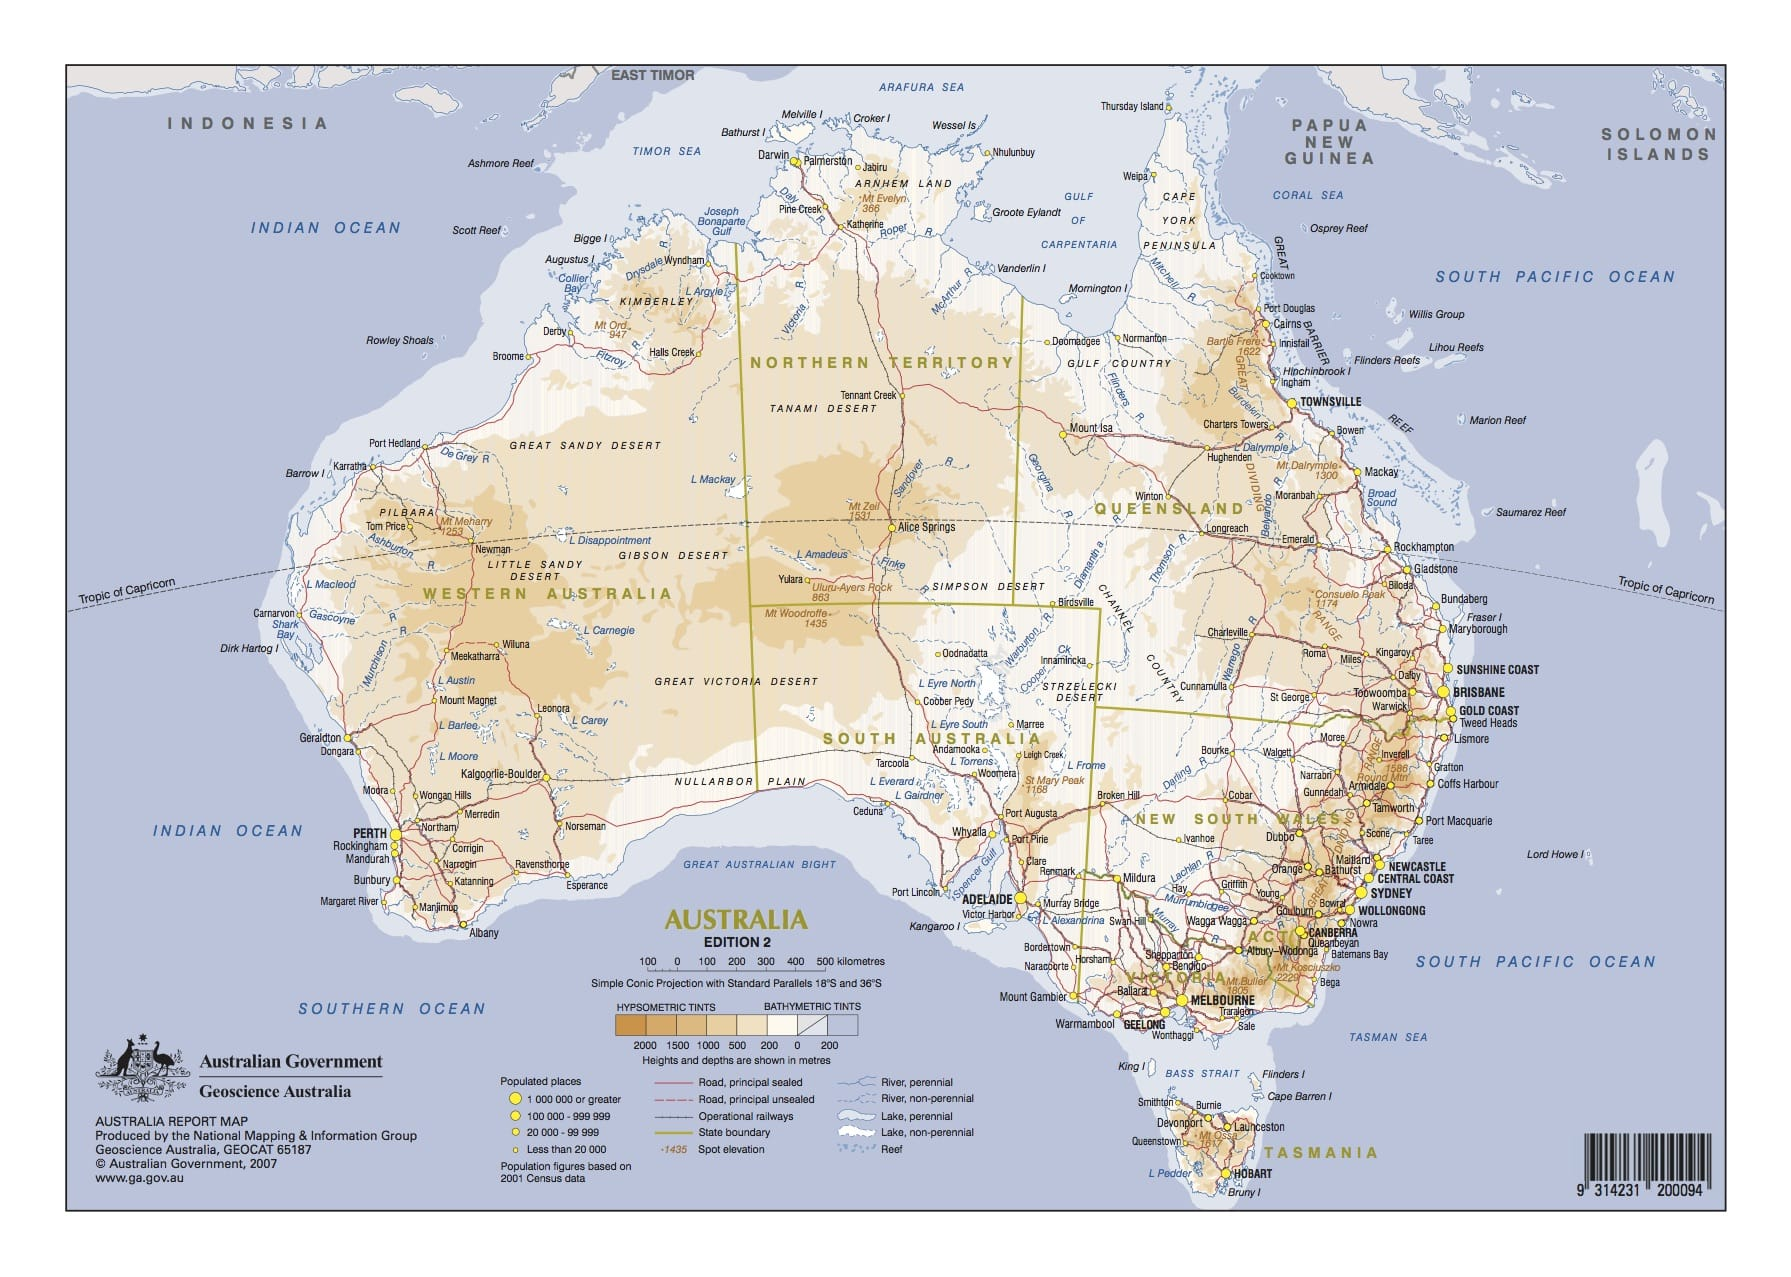 Coastline map of Australia